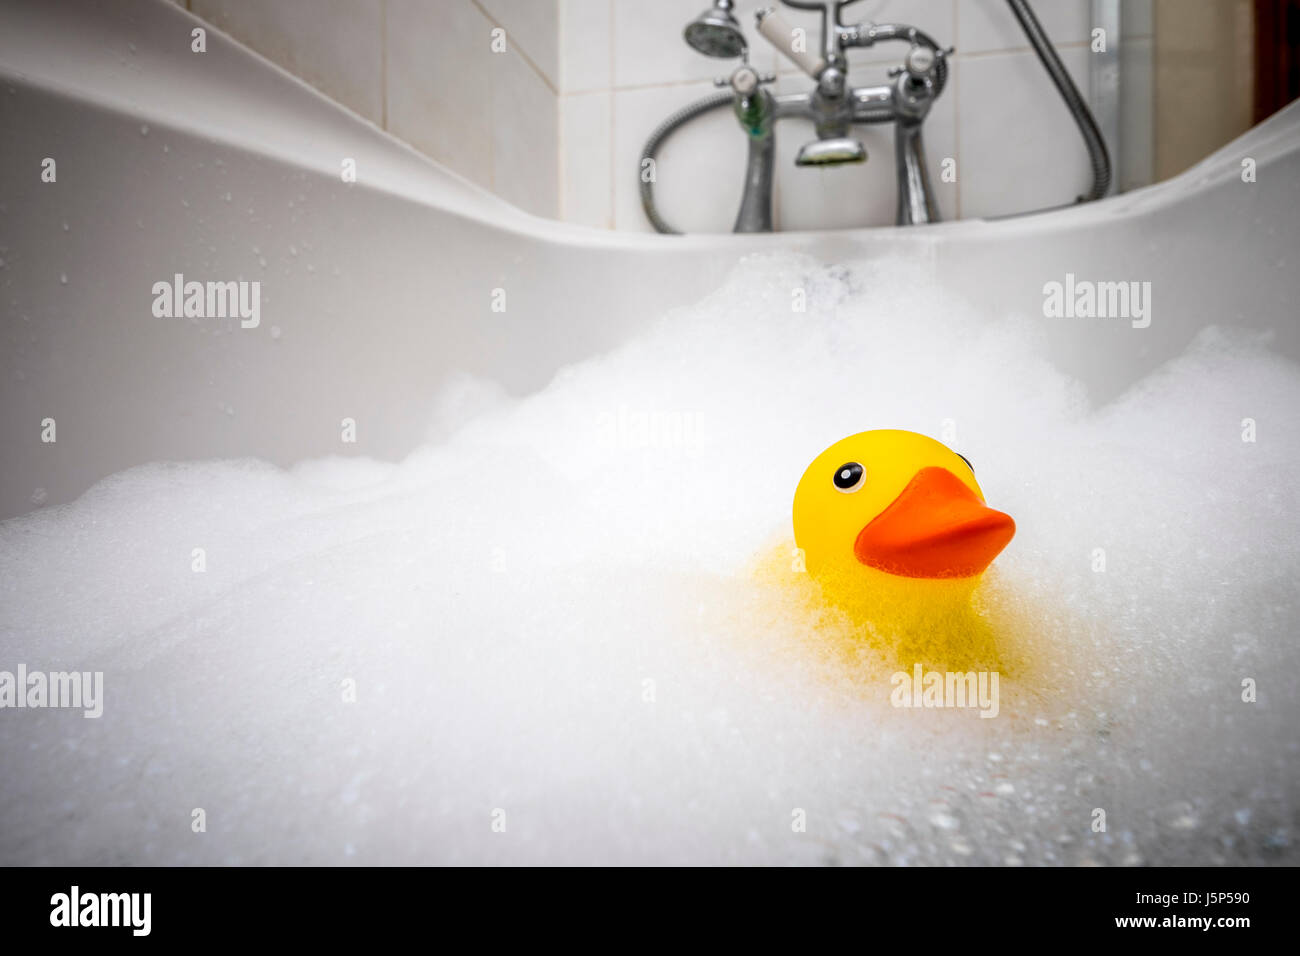 Bubble Bath Foam Stock Photos Amp Bubble Bath Foam Stock